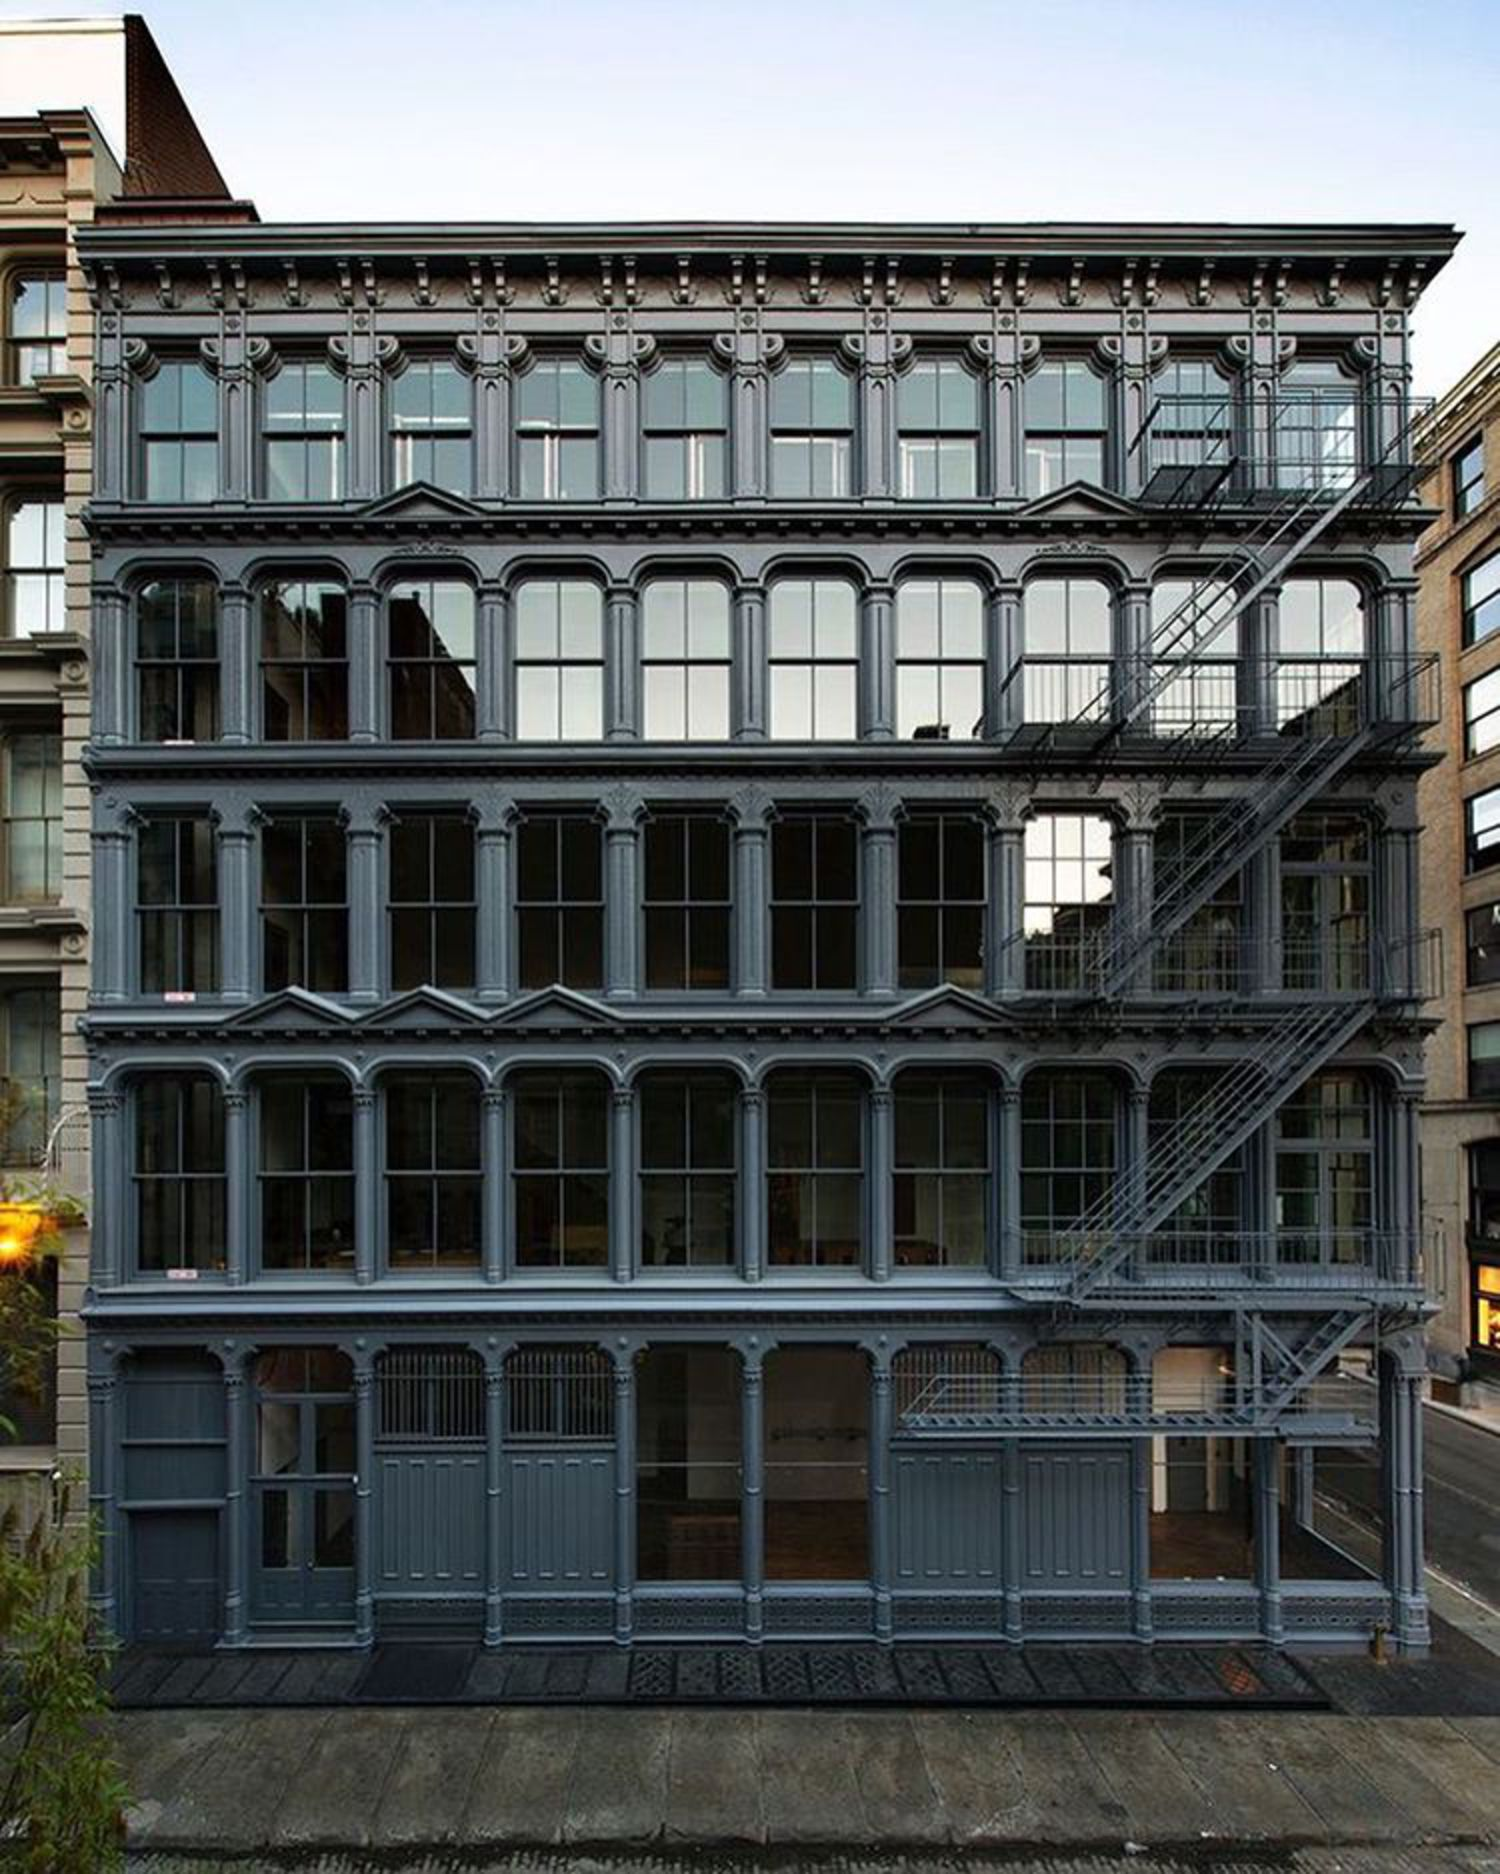 Donald Judd building 101 Spring St, SoHo #NYC #architecture #architectureporn #archidaily #archilovers #instarchitecture #soho #nycarchitecture #donaldjudd